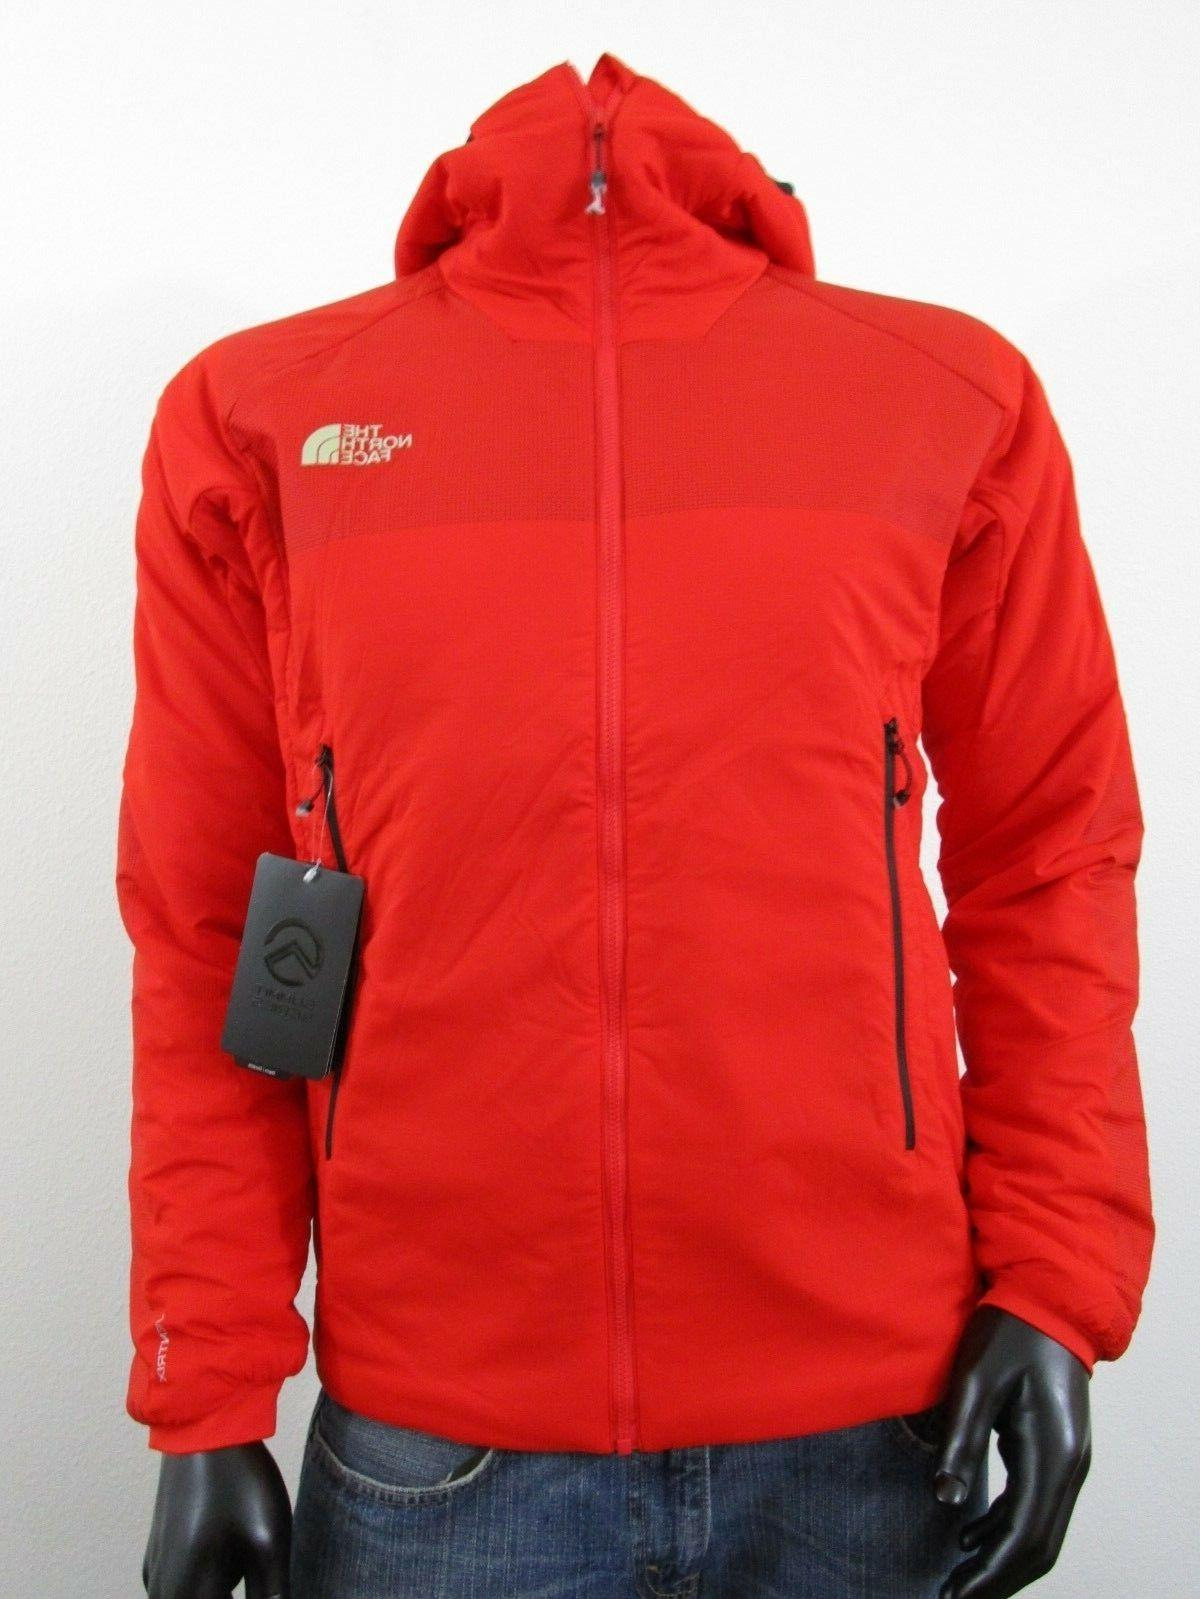 nwt mens tnf l3 ventrix hooded insulated